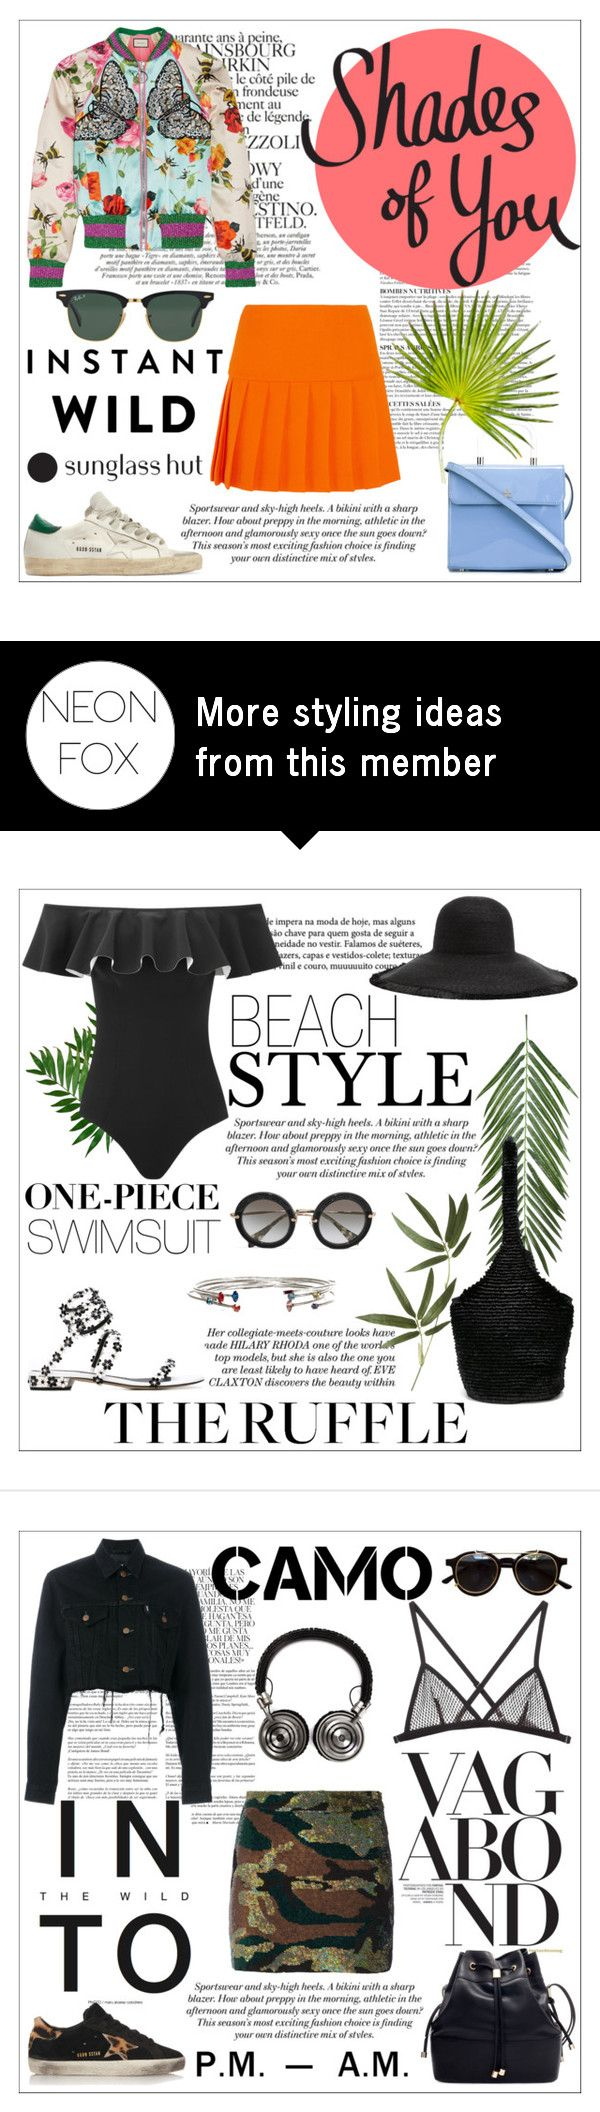 """""""Shades of You: Sunglass Hut Contest Entry"""" by neon-fox on Polyvore featuring H&M, Anja, Chanel, Courrèges, Gucci, Miu Miu, Golden Goose, Ray-Ban and shadesofyou"""